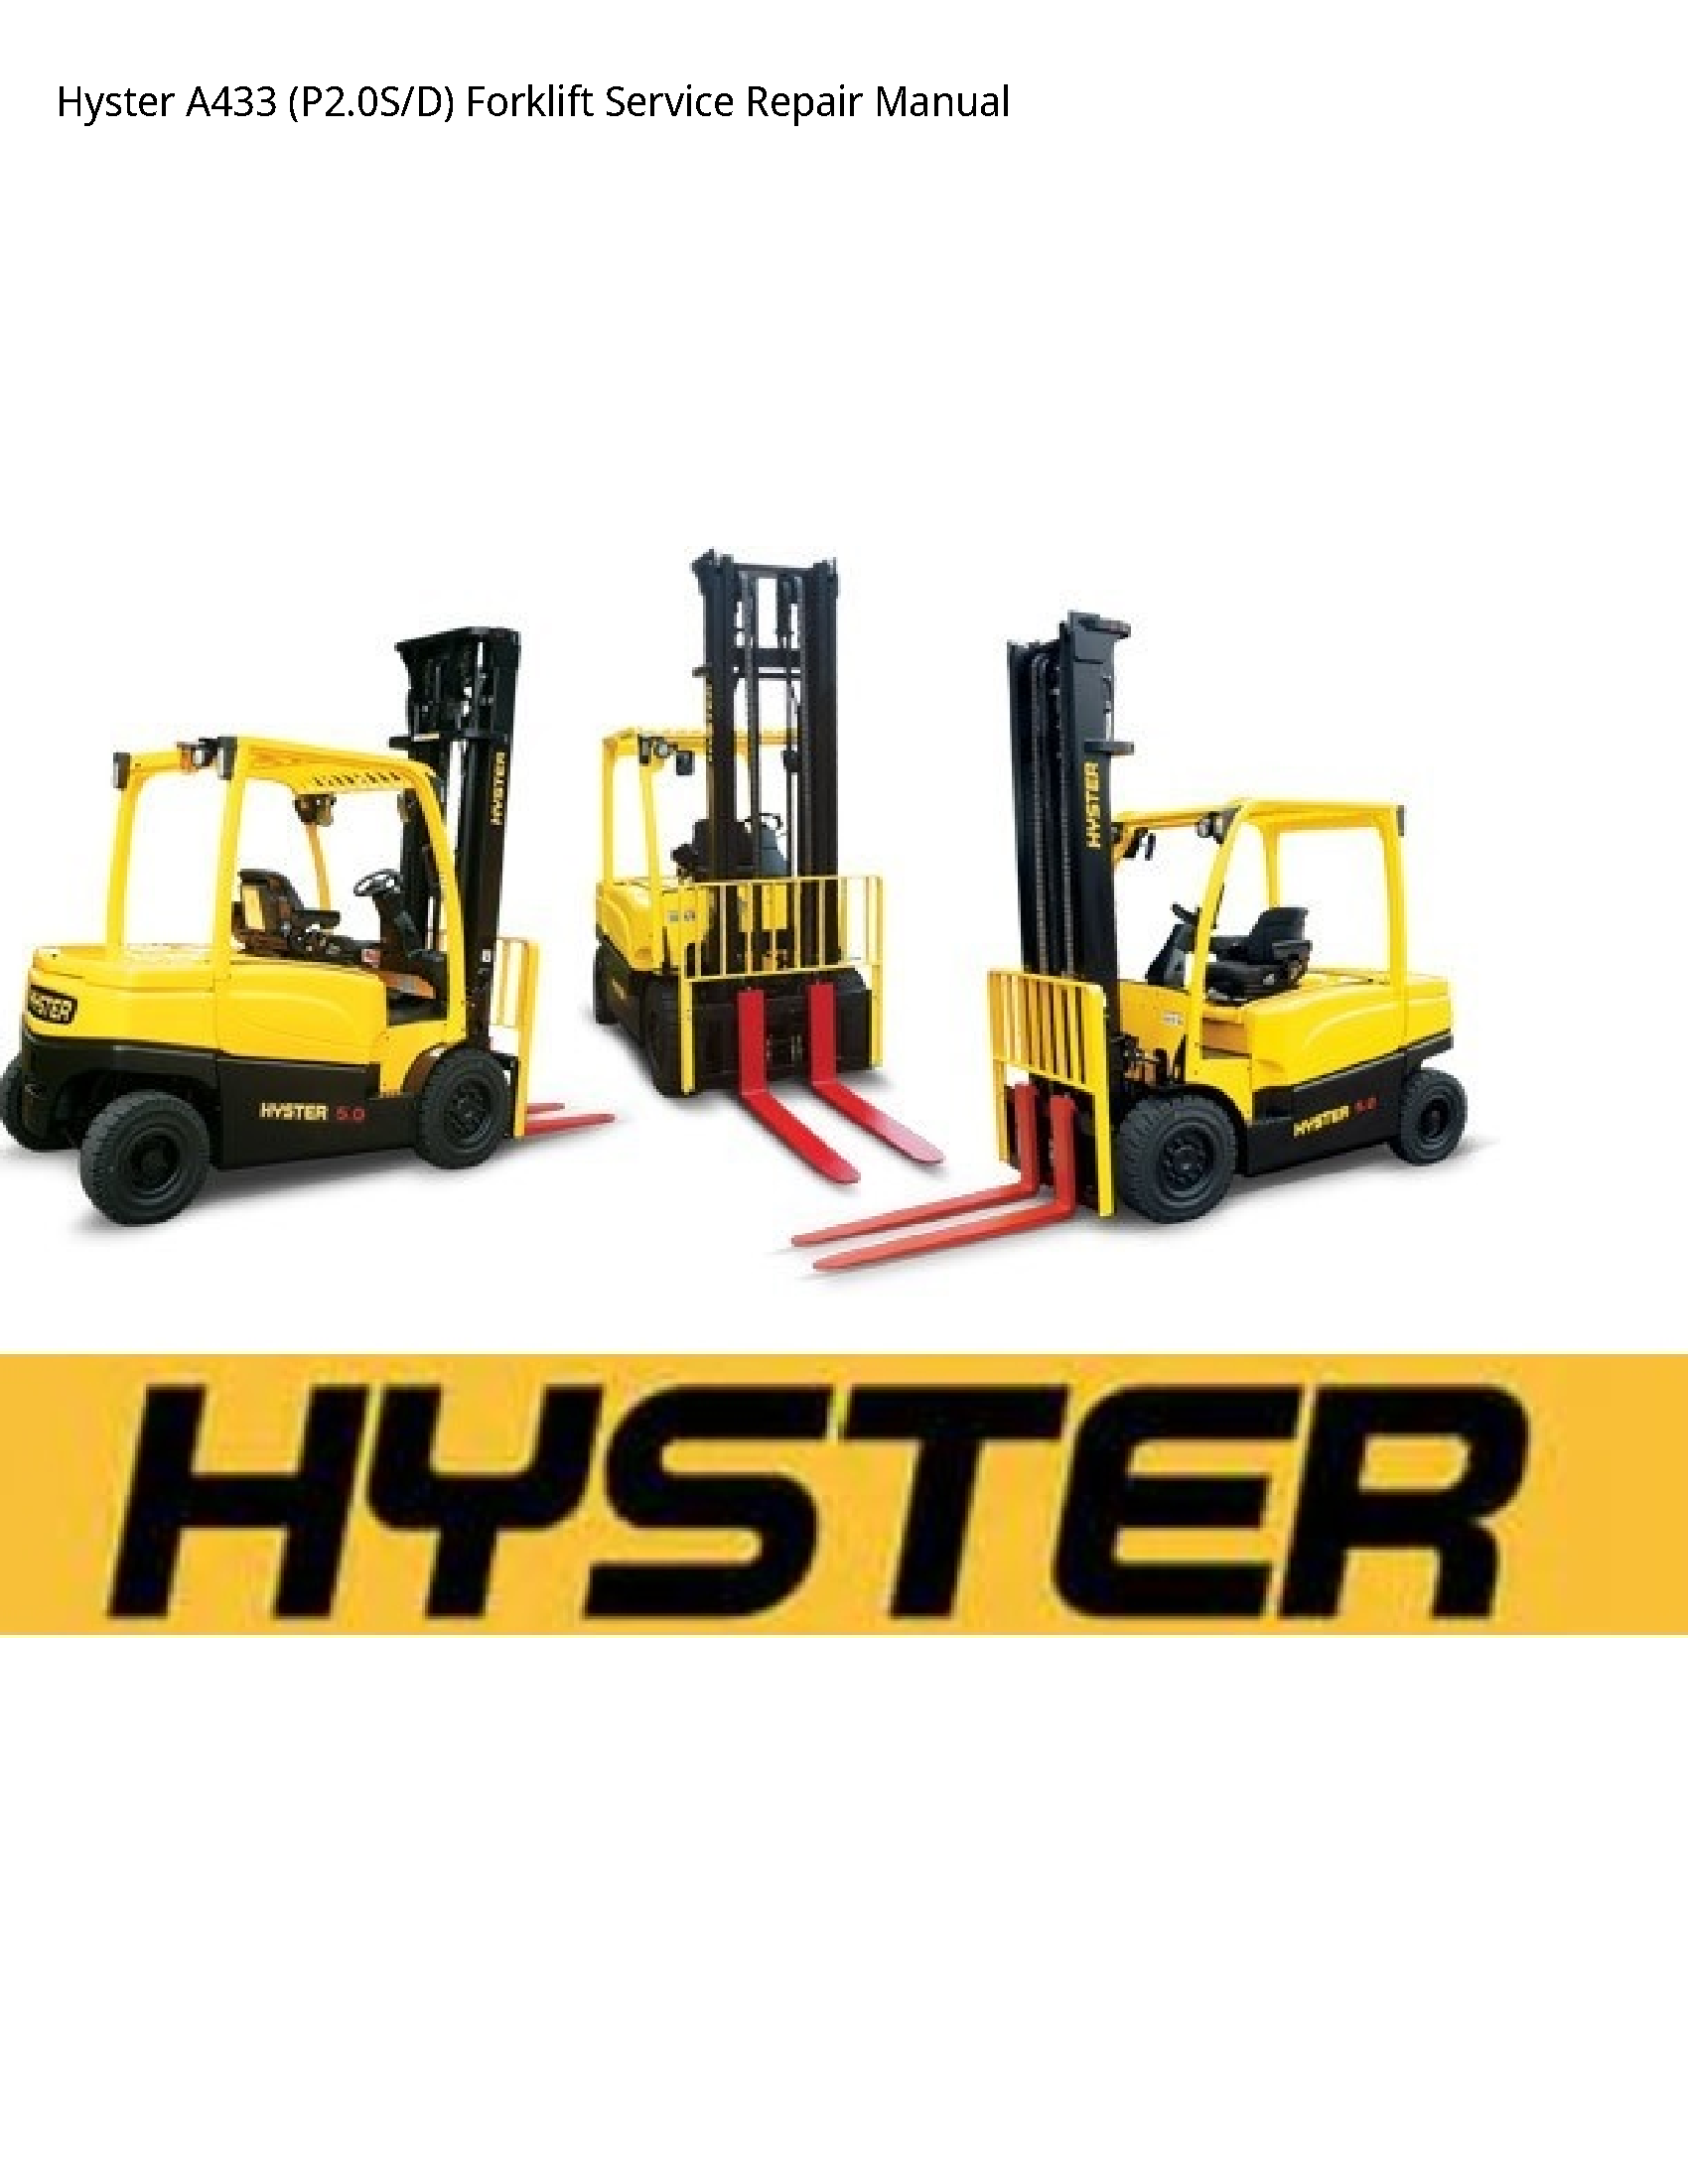 Hyster A433 Forklift manual